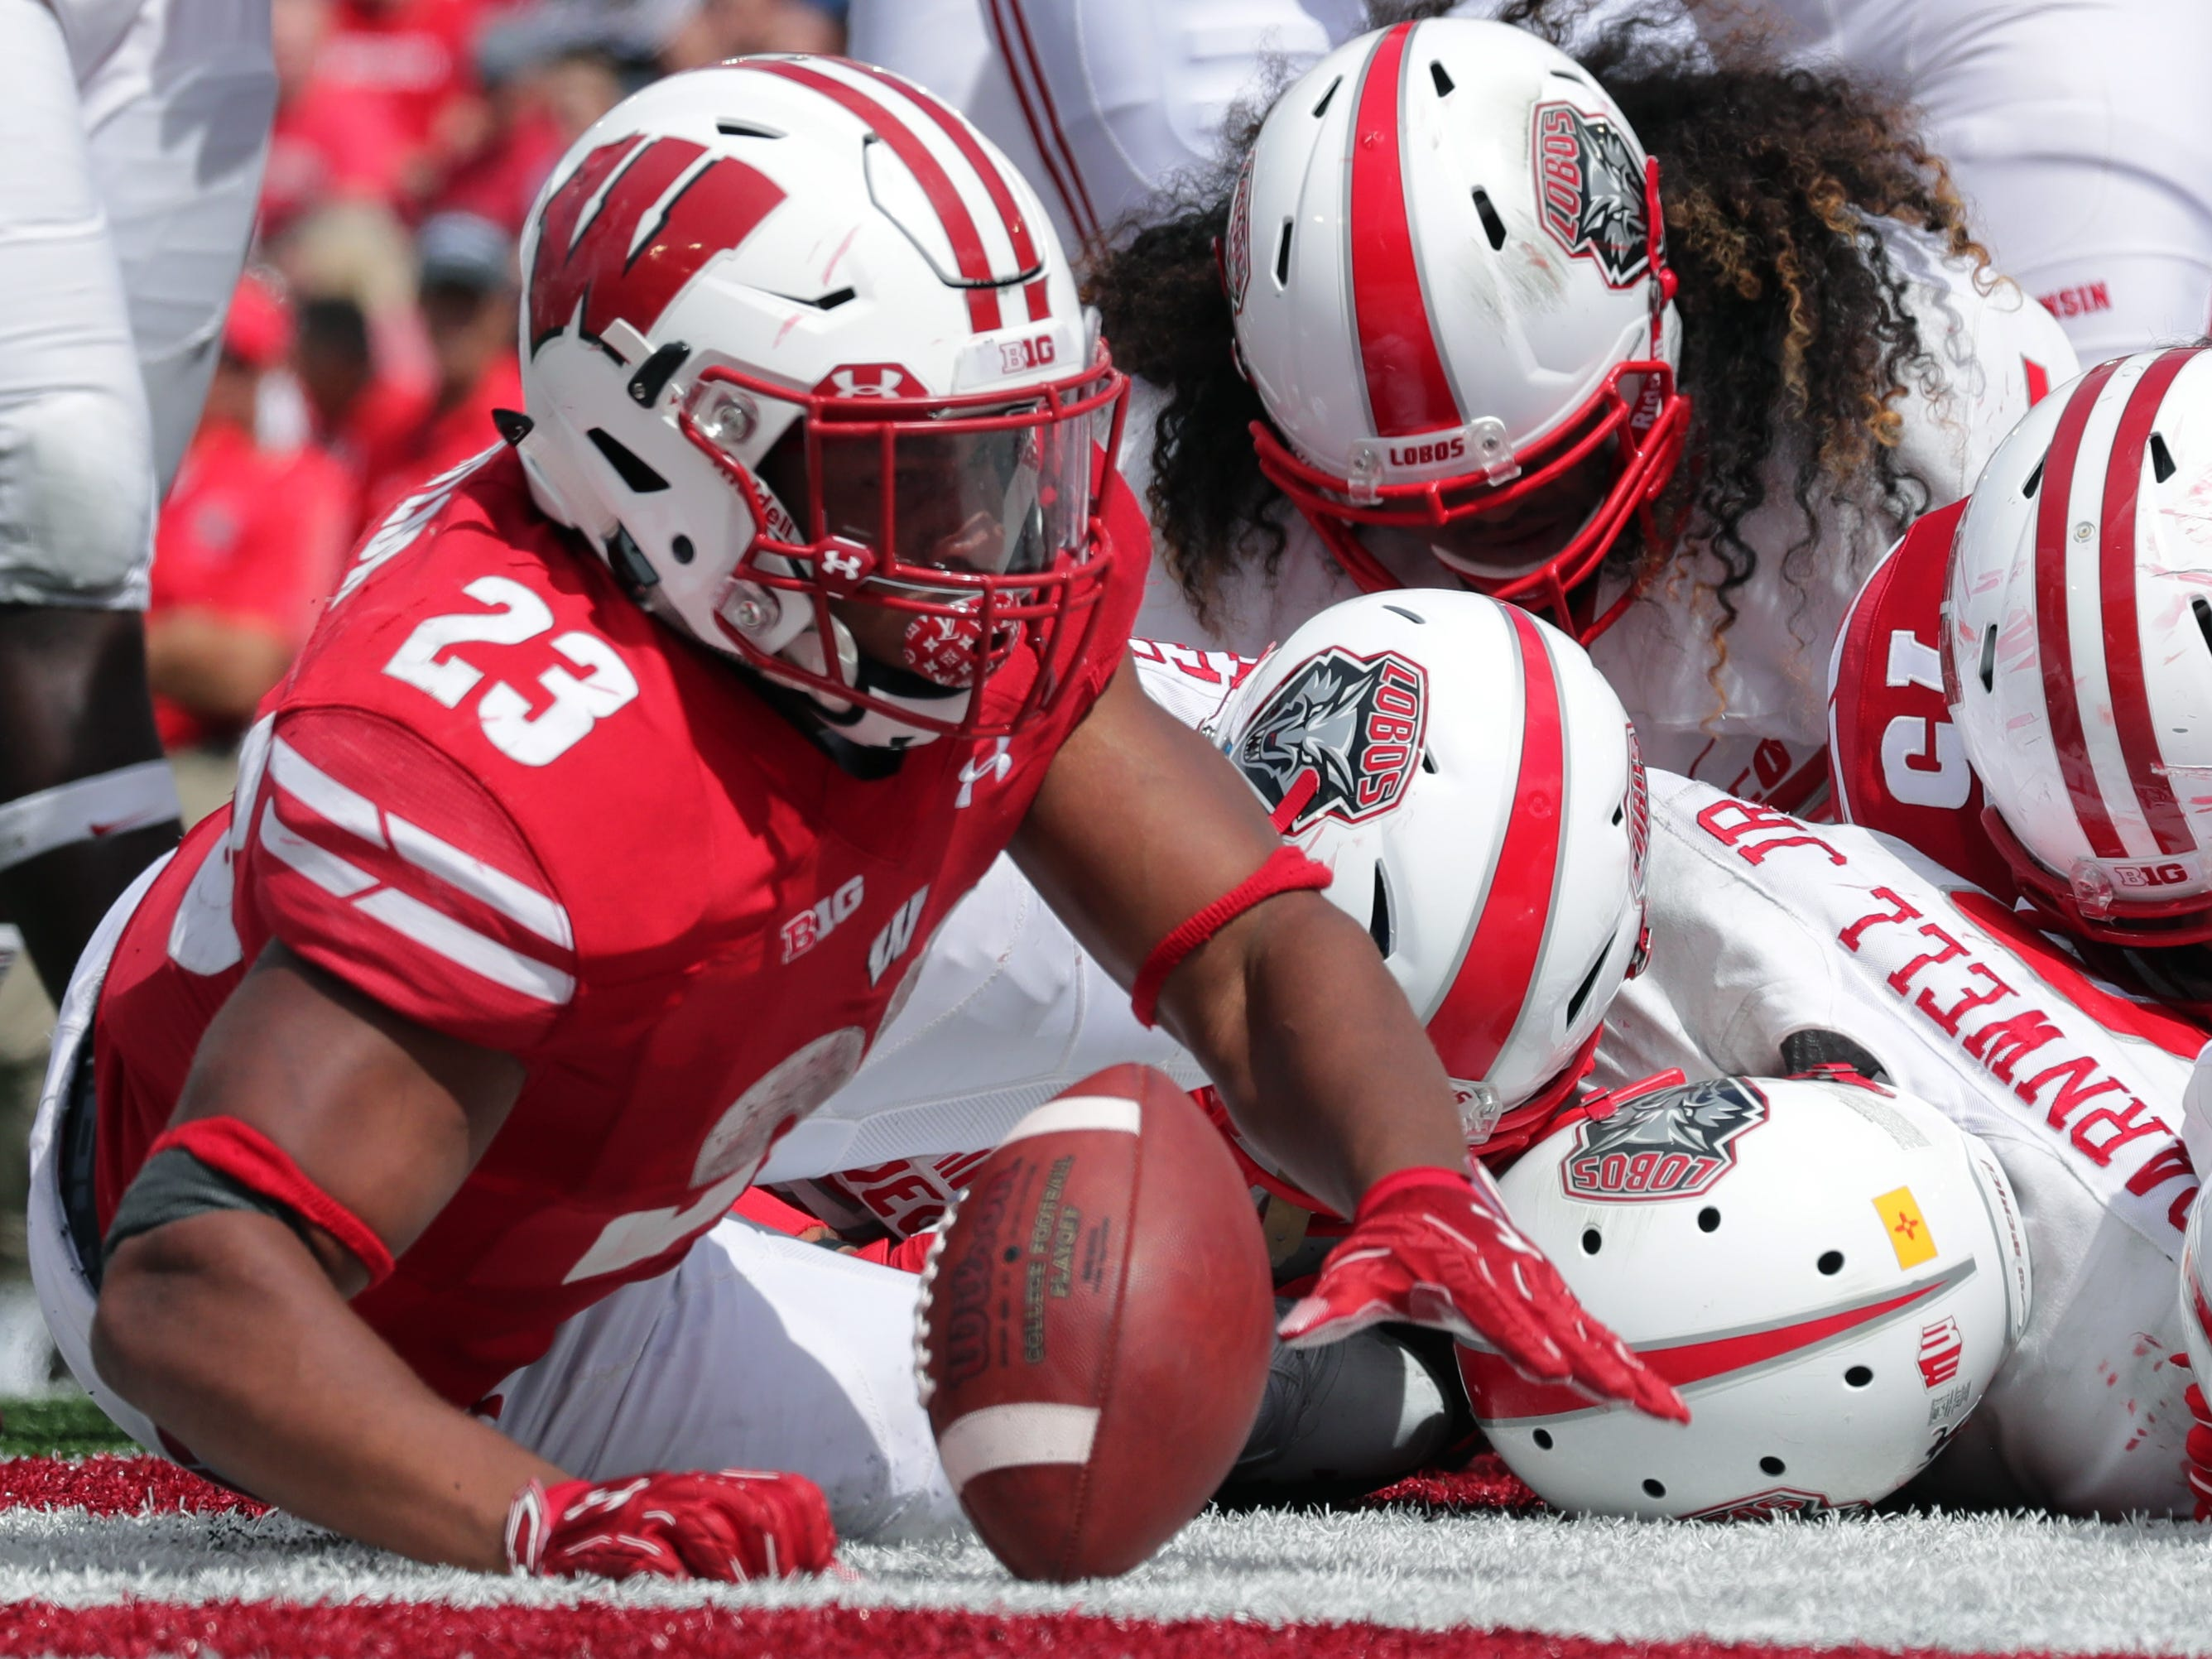 Wisconsin running back Jonathan Taylor bulls his way into the end zone.